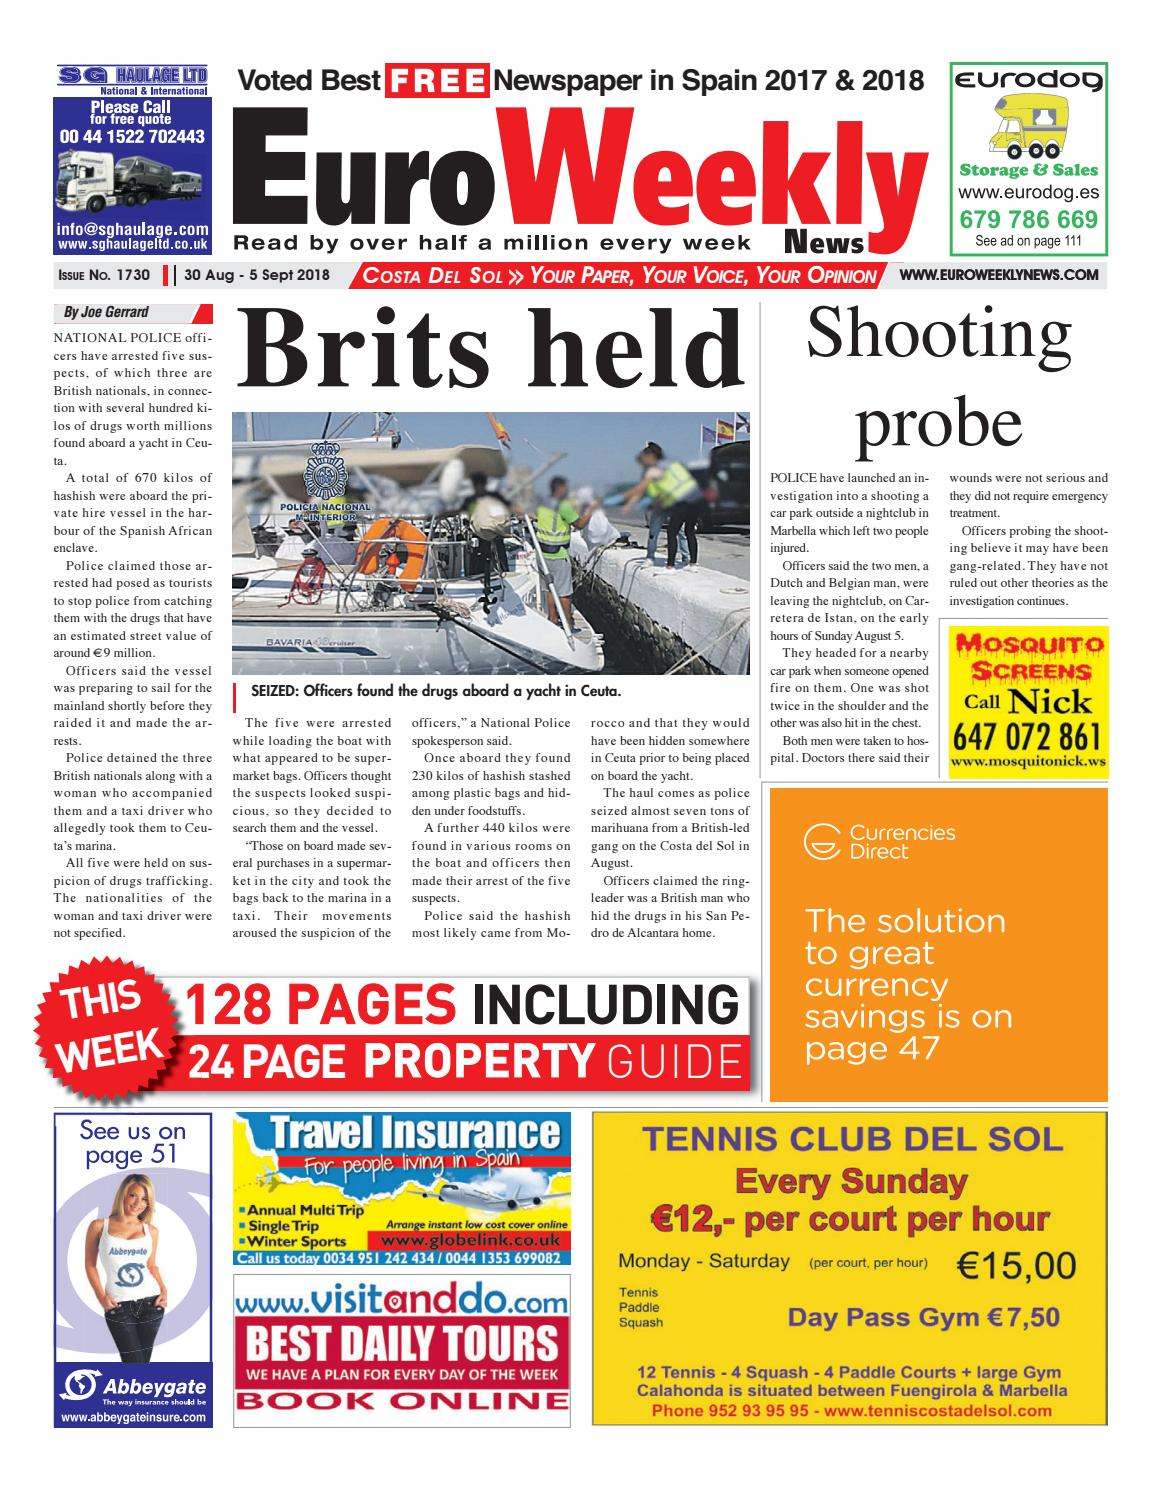 Euro Weekly News Costa del Sol 30 August 5 September